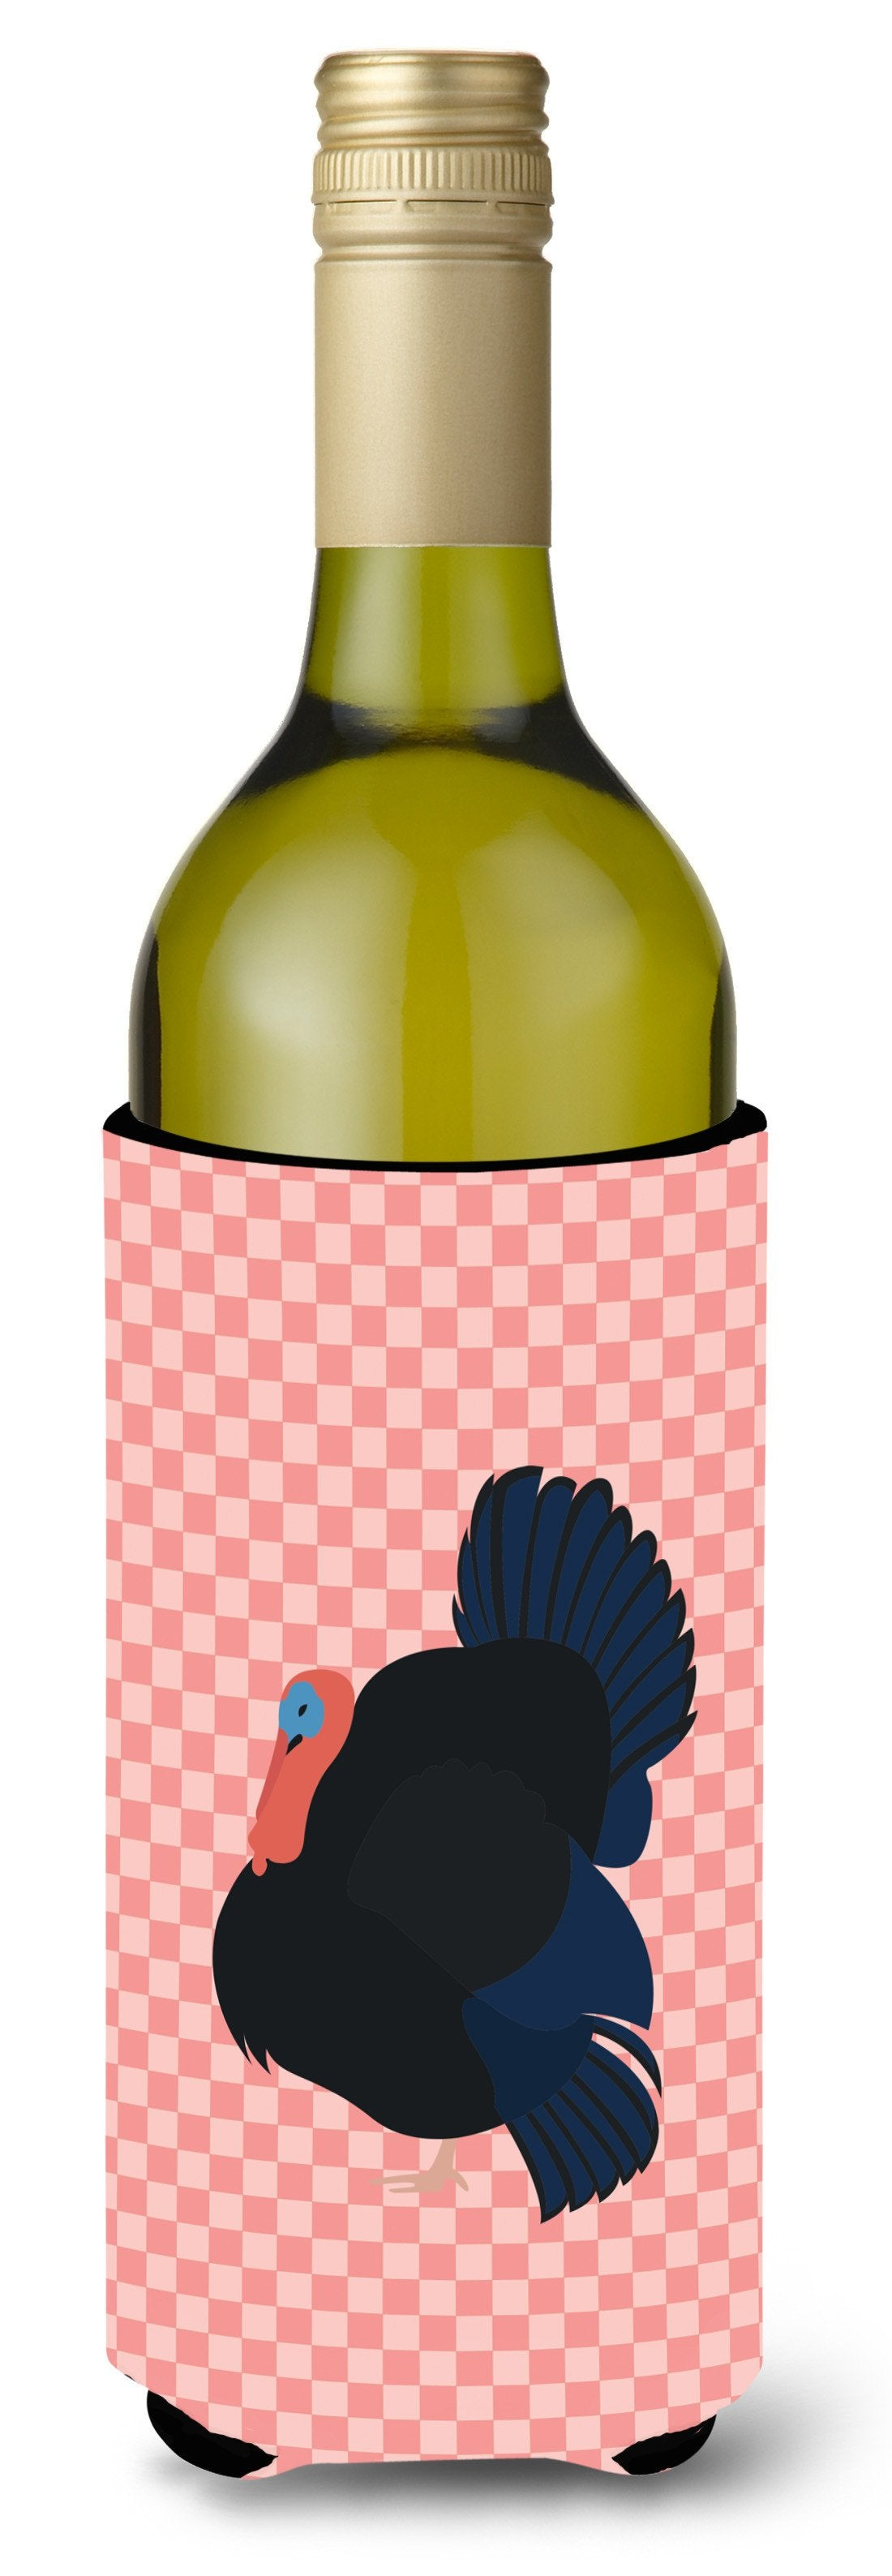 Norfolk Black Turkey Pink Check Wine Bottle Beverge Insulator Hugger BB7985LITERK by Caroline's Treasures